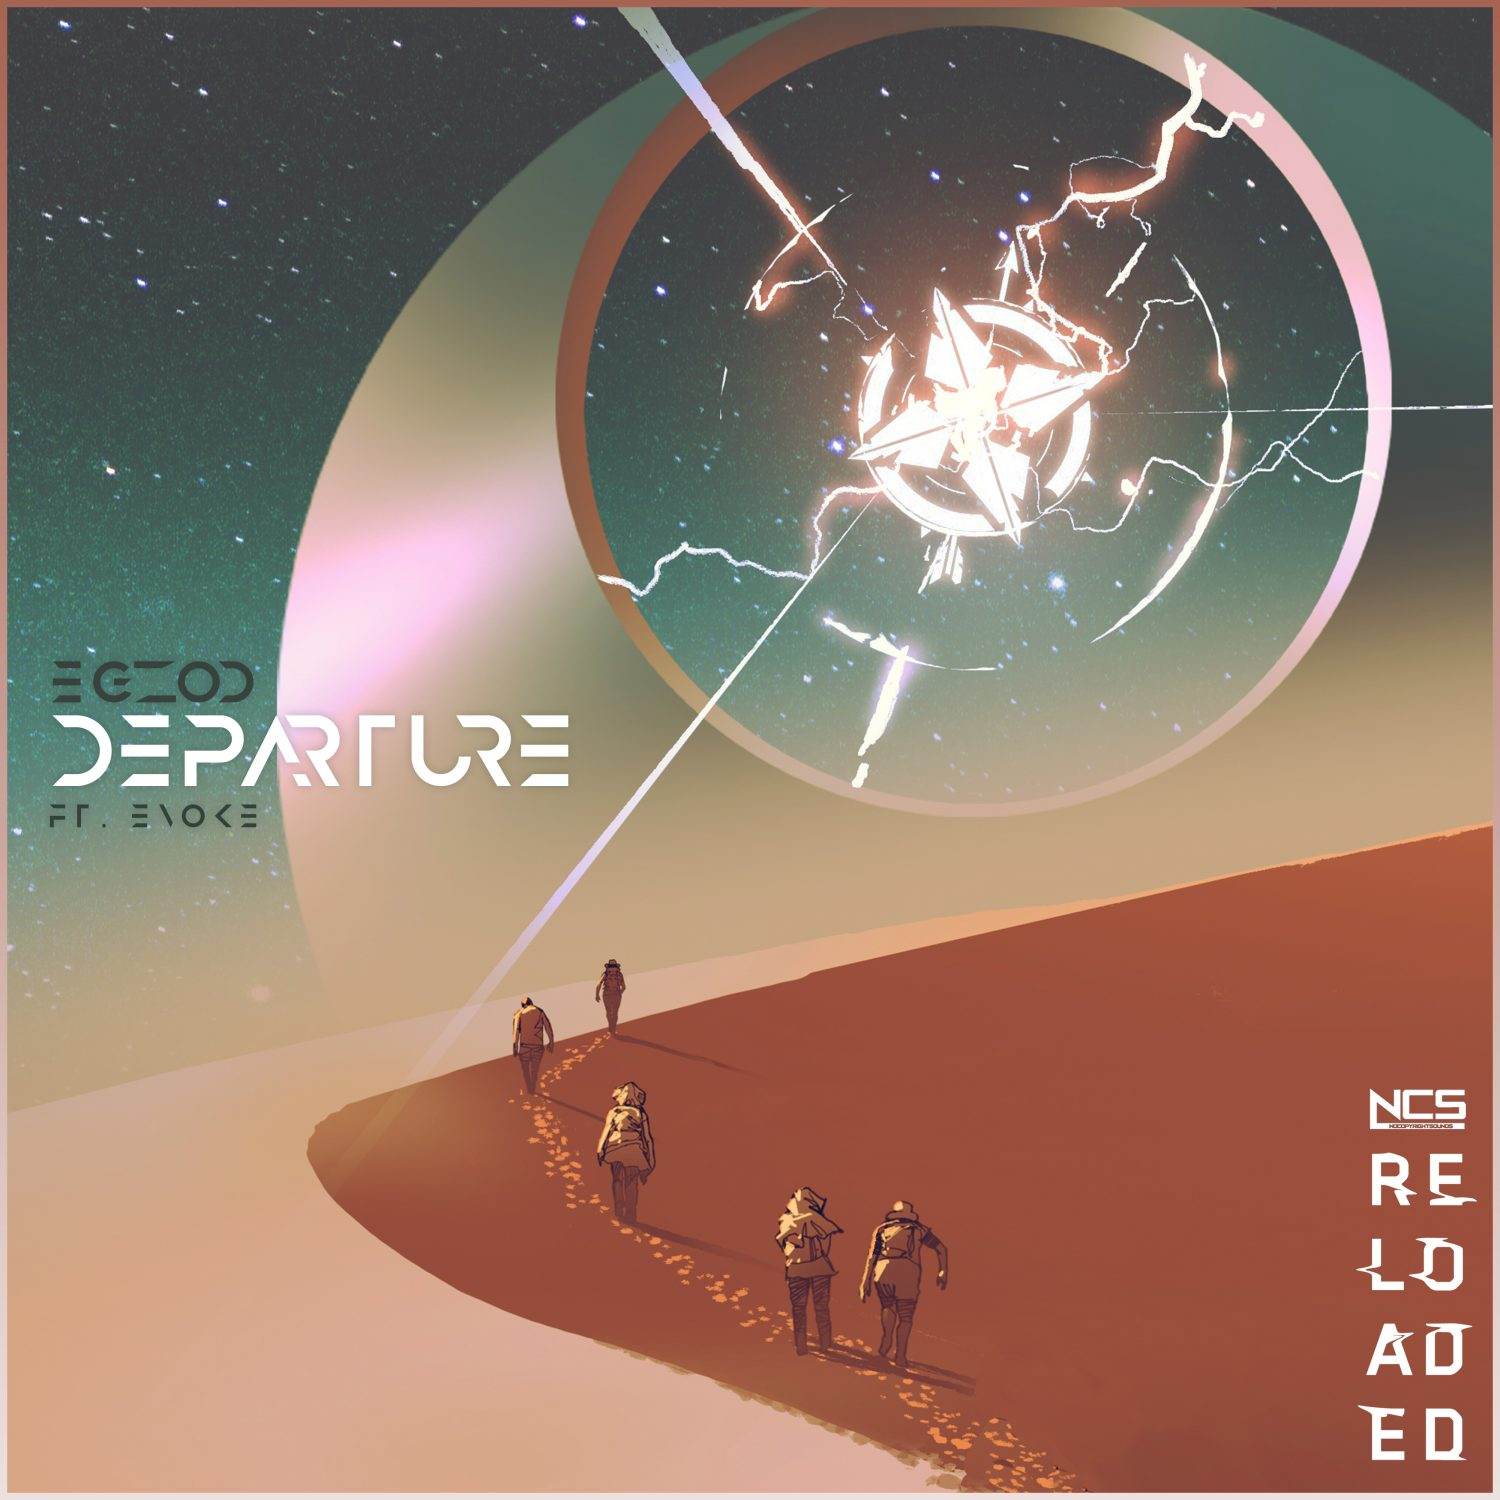 """Egzod Releases """"Departure"""" on NCS"""